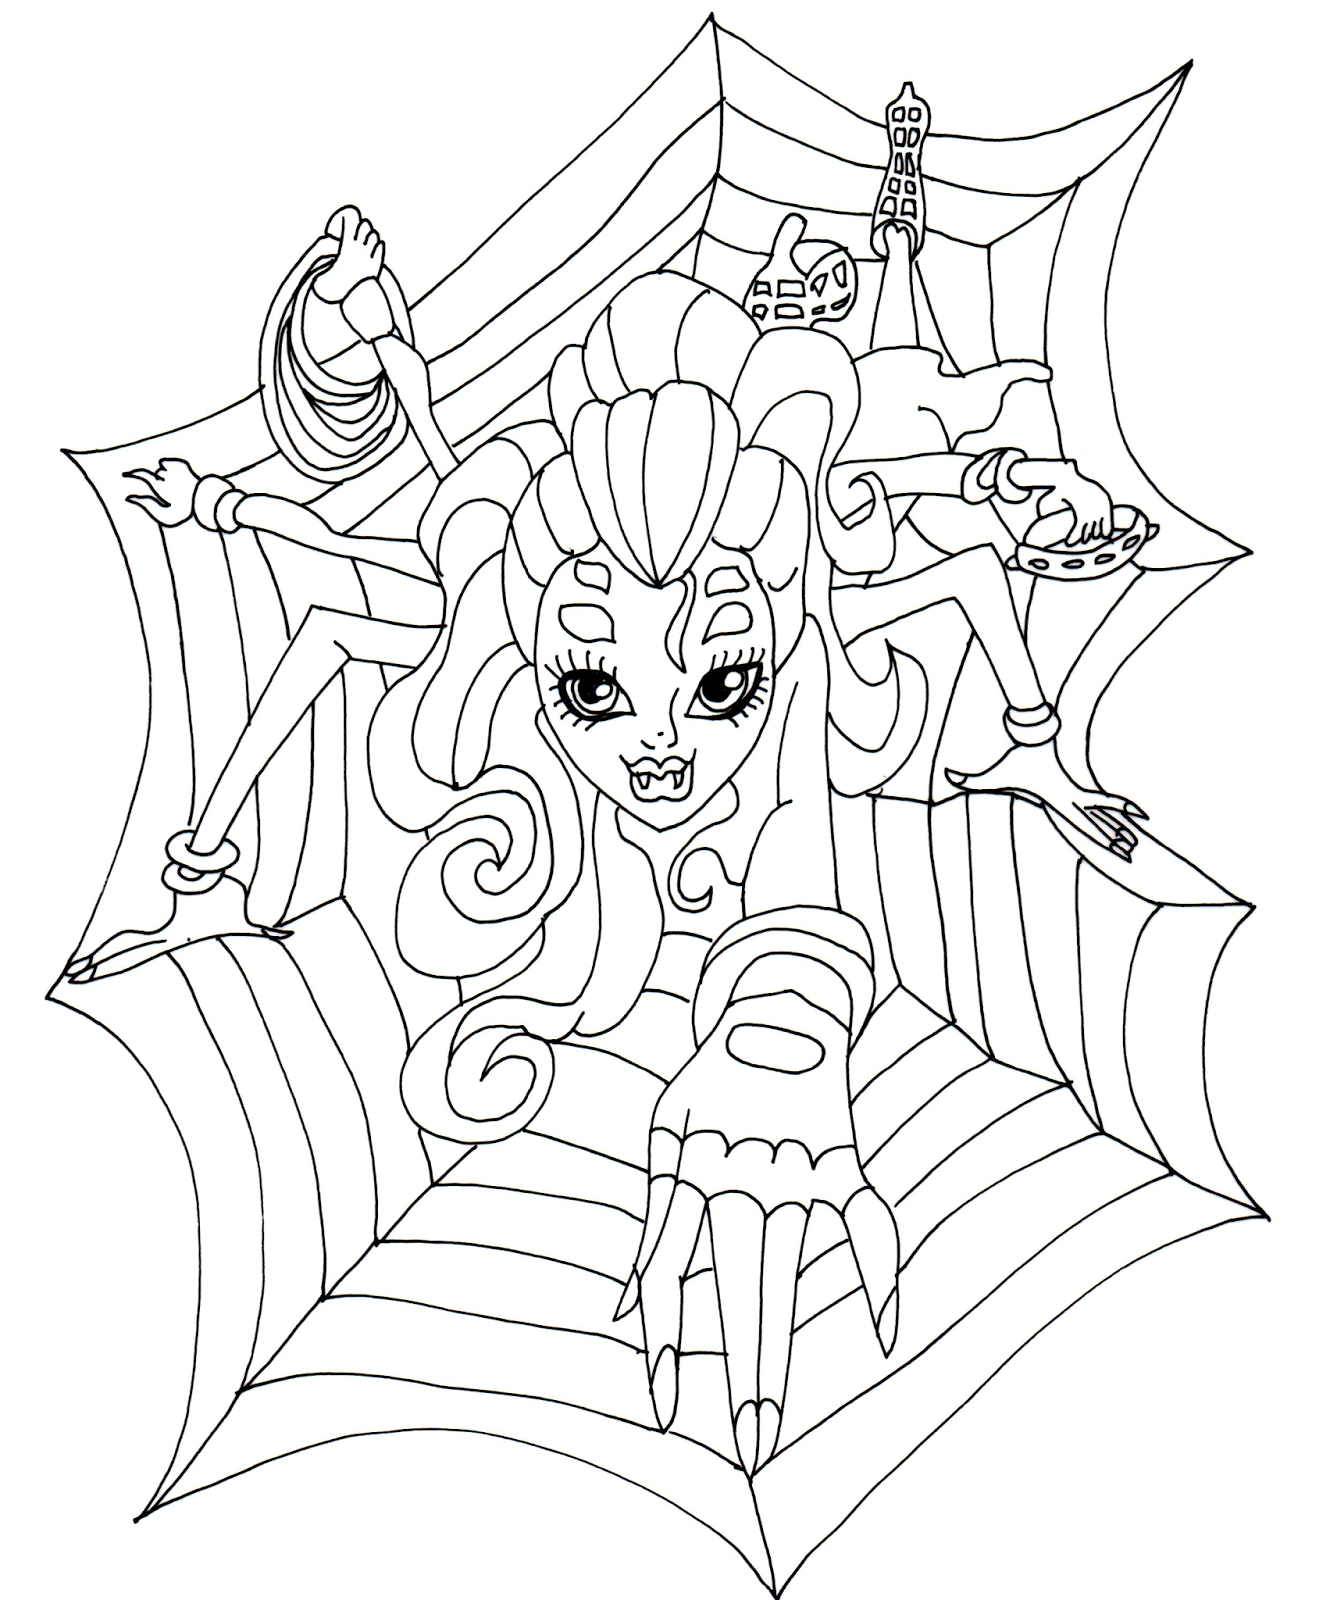 Free Printable Monster High Coloring Pages: Wydowna as